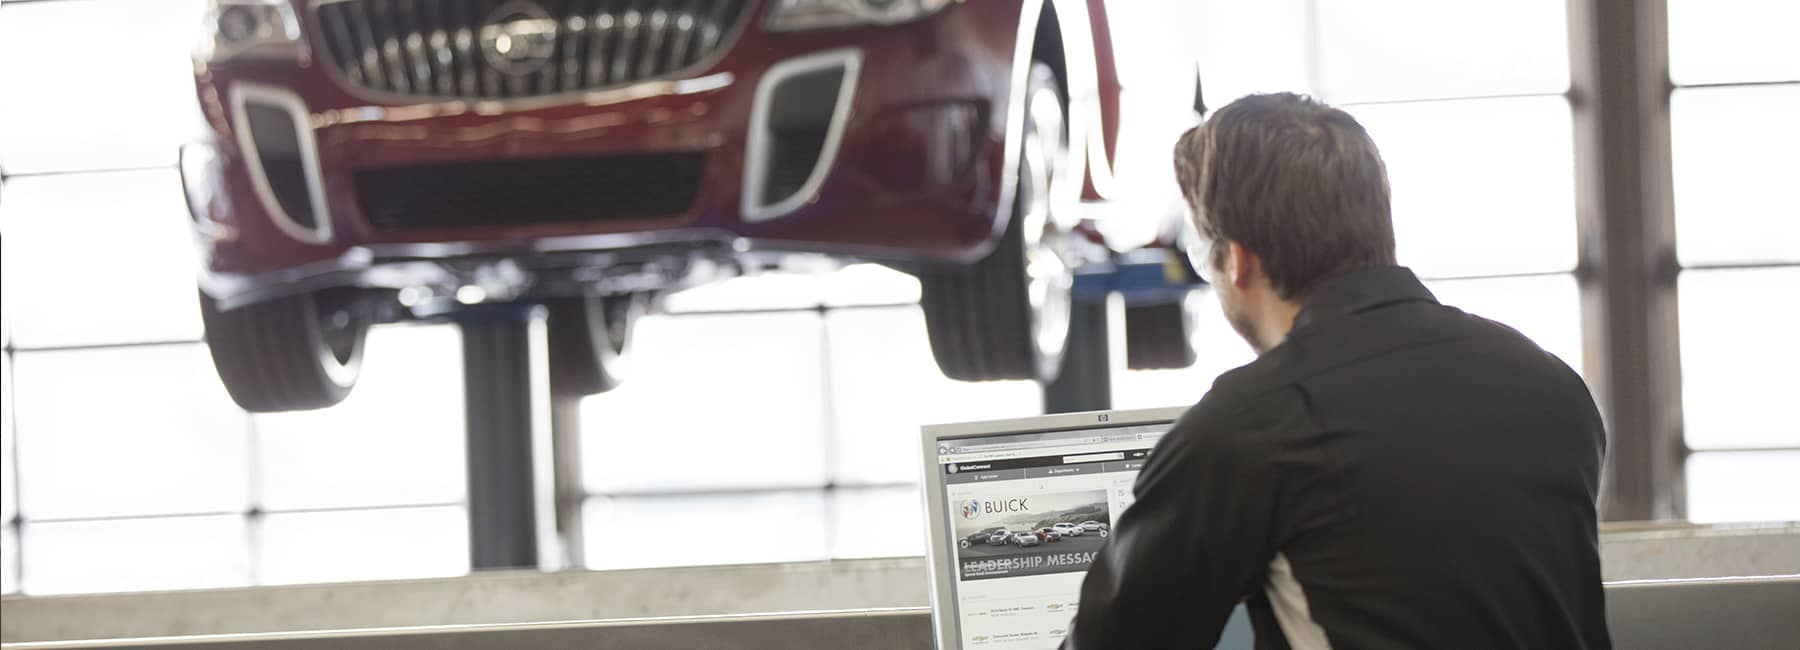 Buick service technician looking at car raised up